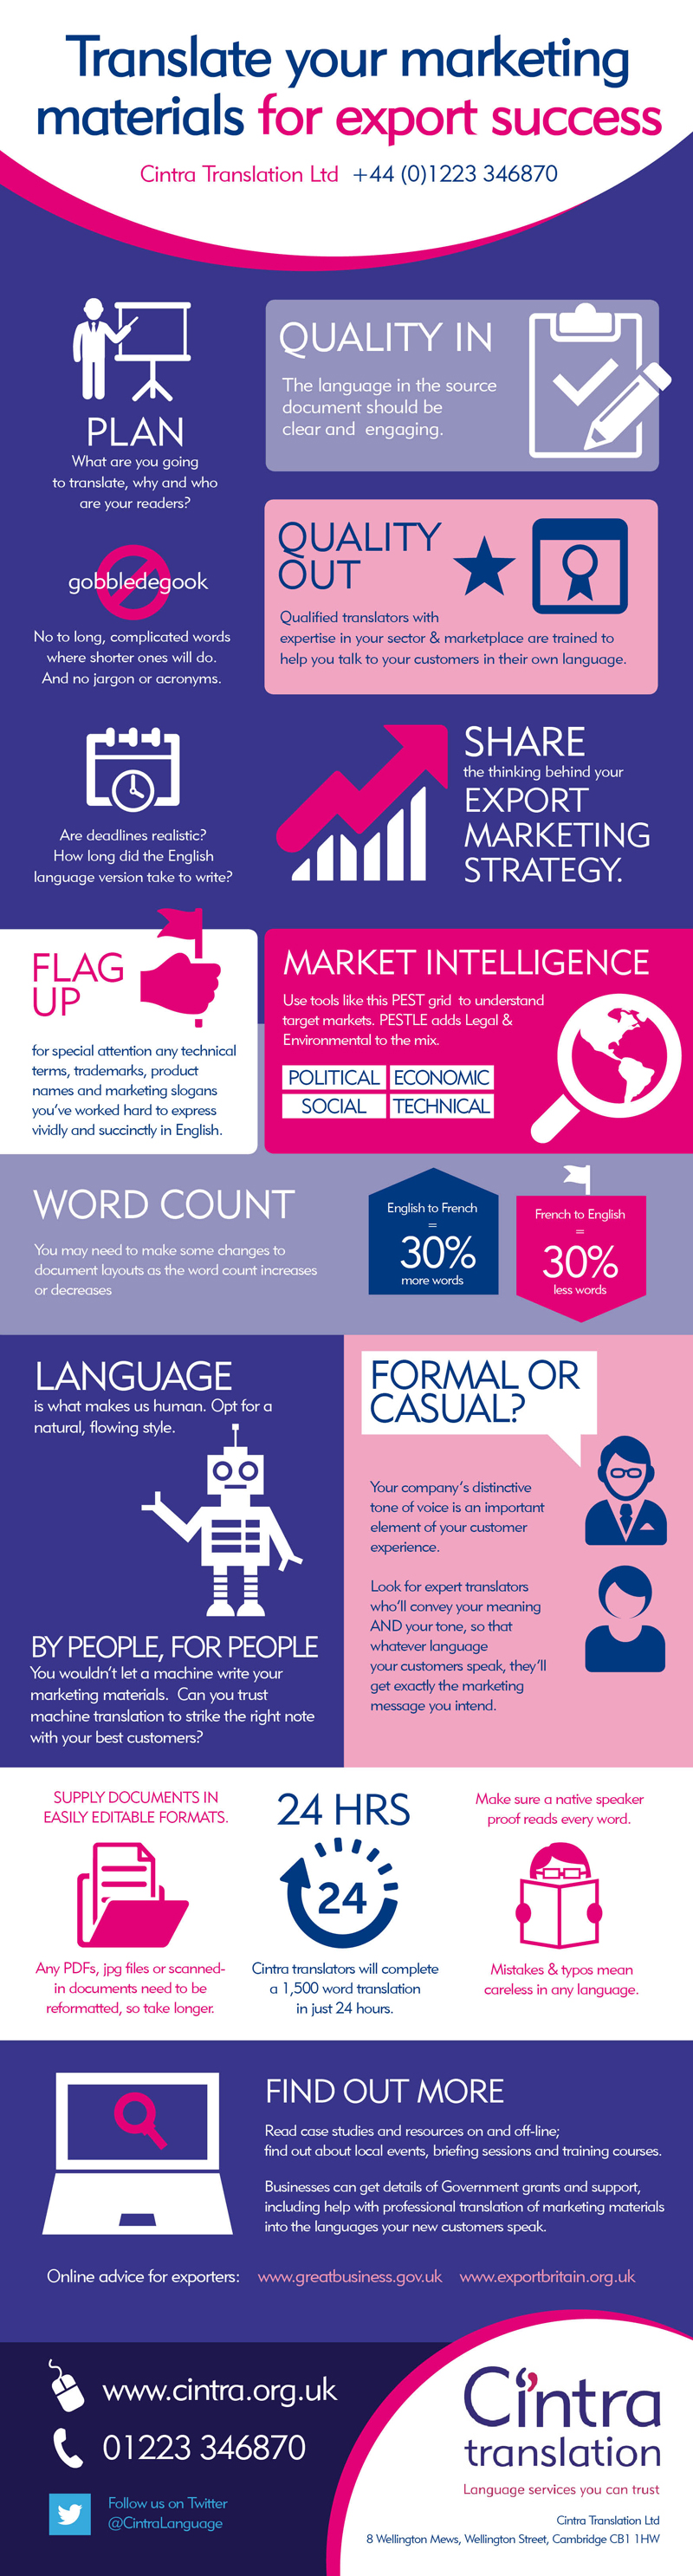 cintra-infographic-final Translate your marketing materials Jan 2015